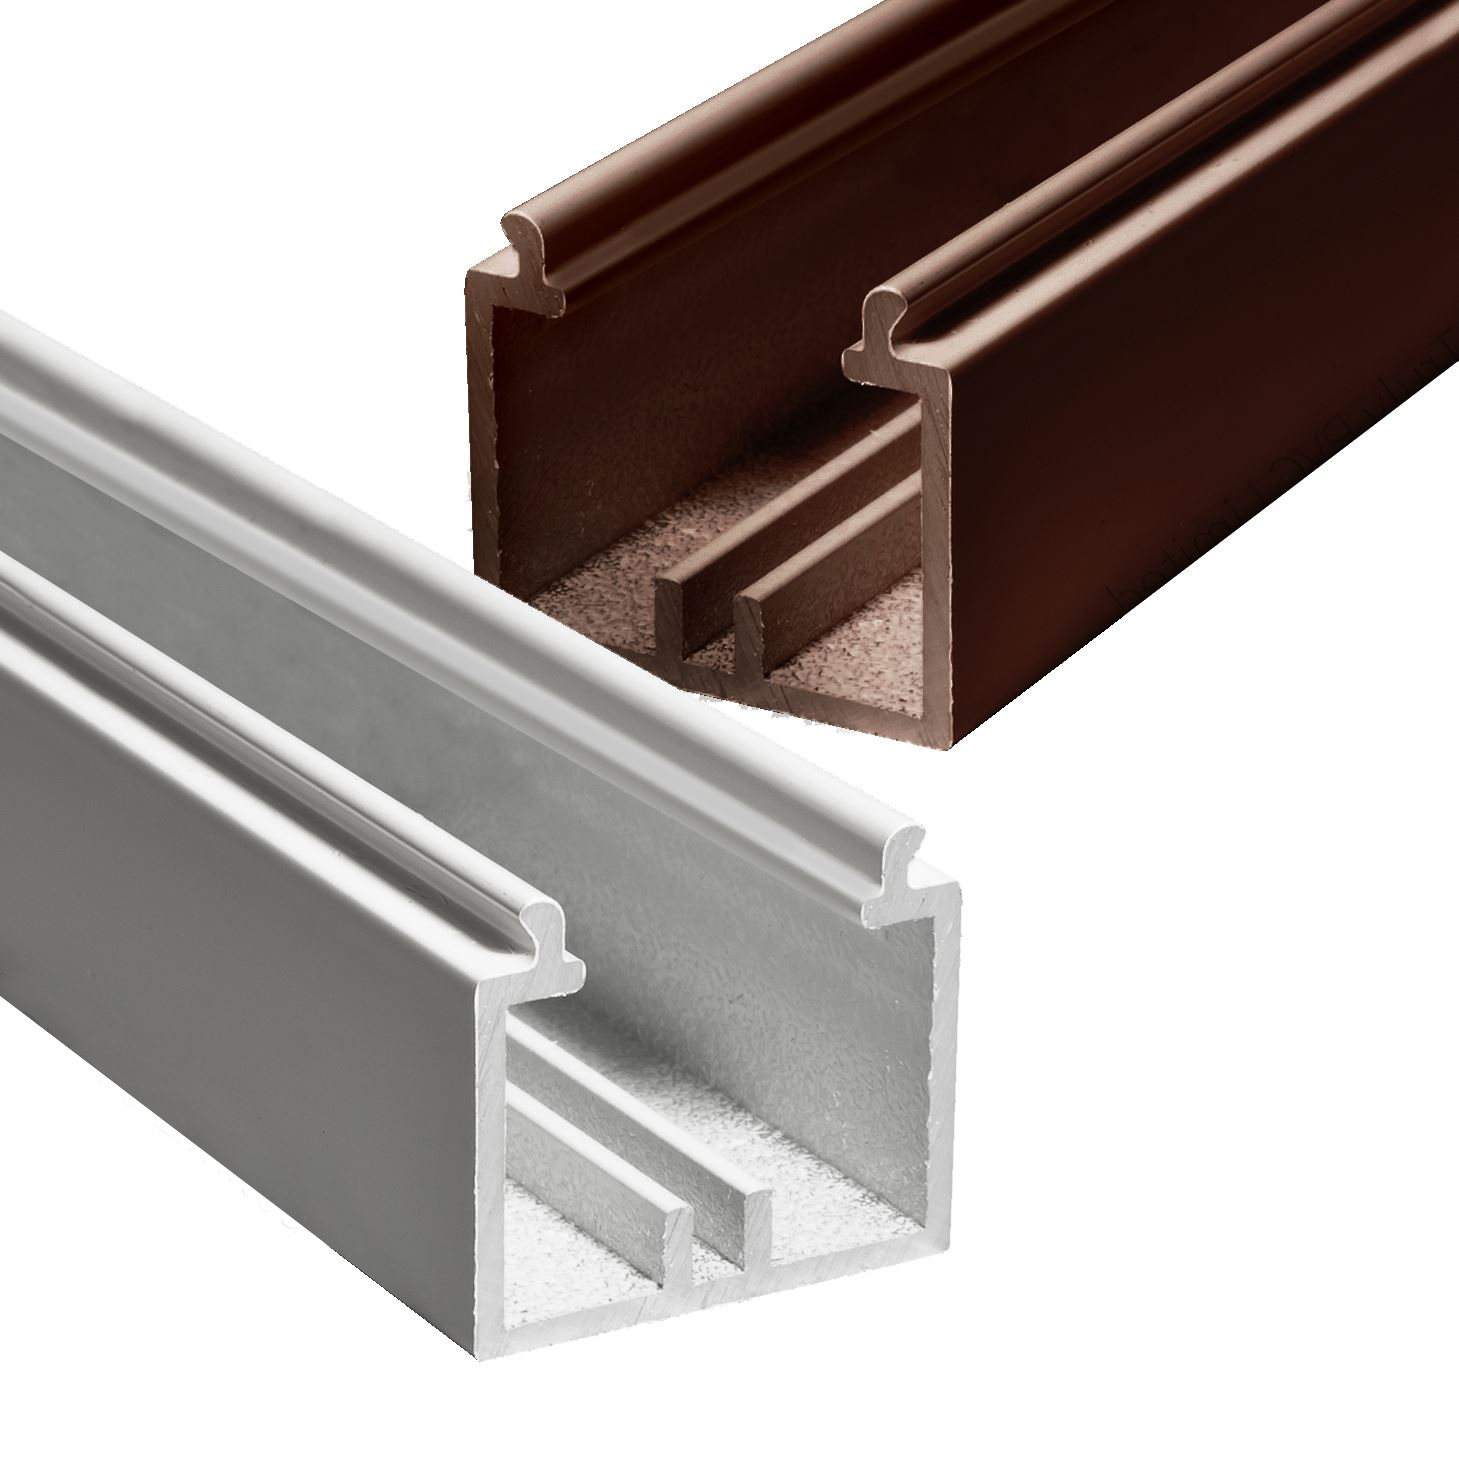 3m Sunwood Cresting Channel Powder Coated Cast Aluminium